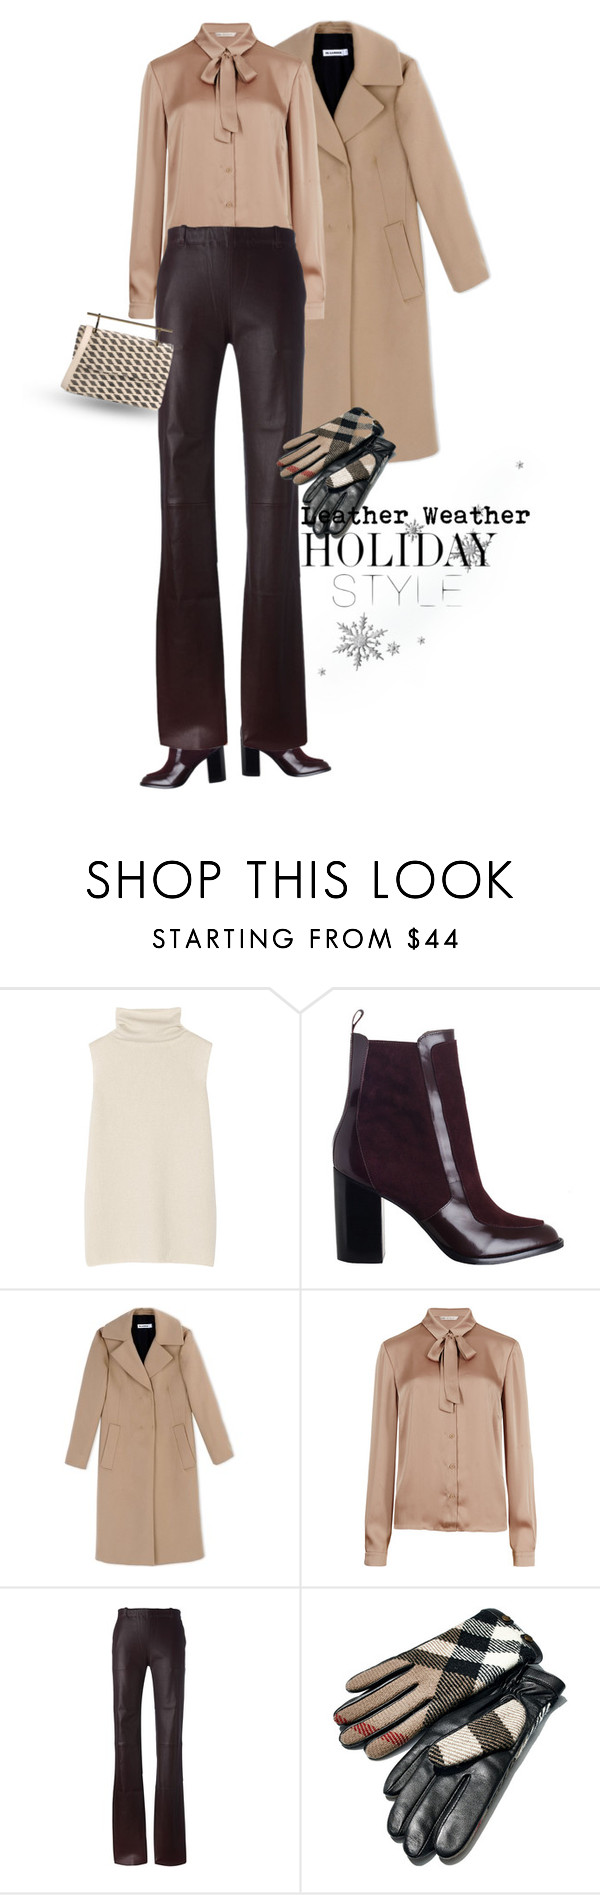 """Untitled #299"" by taz7568 ❤ liked on Polyvore featuring The Row, Zimmermann, Jil Sander, M&S Collection, STOULS, Burberry, M2Malletier and holidaystyle"